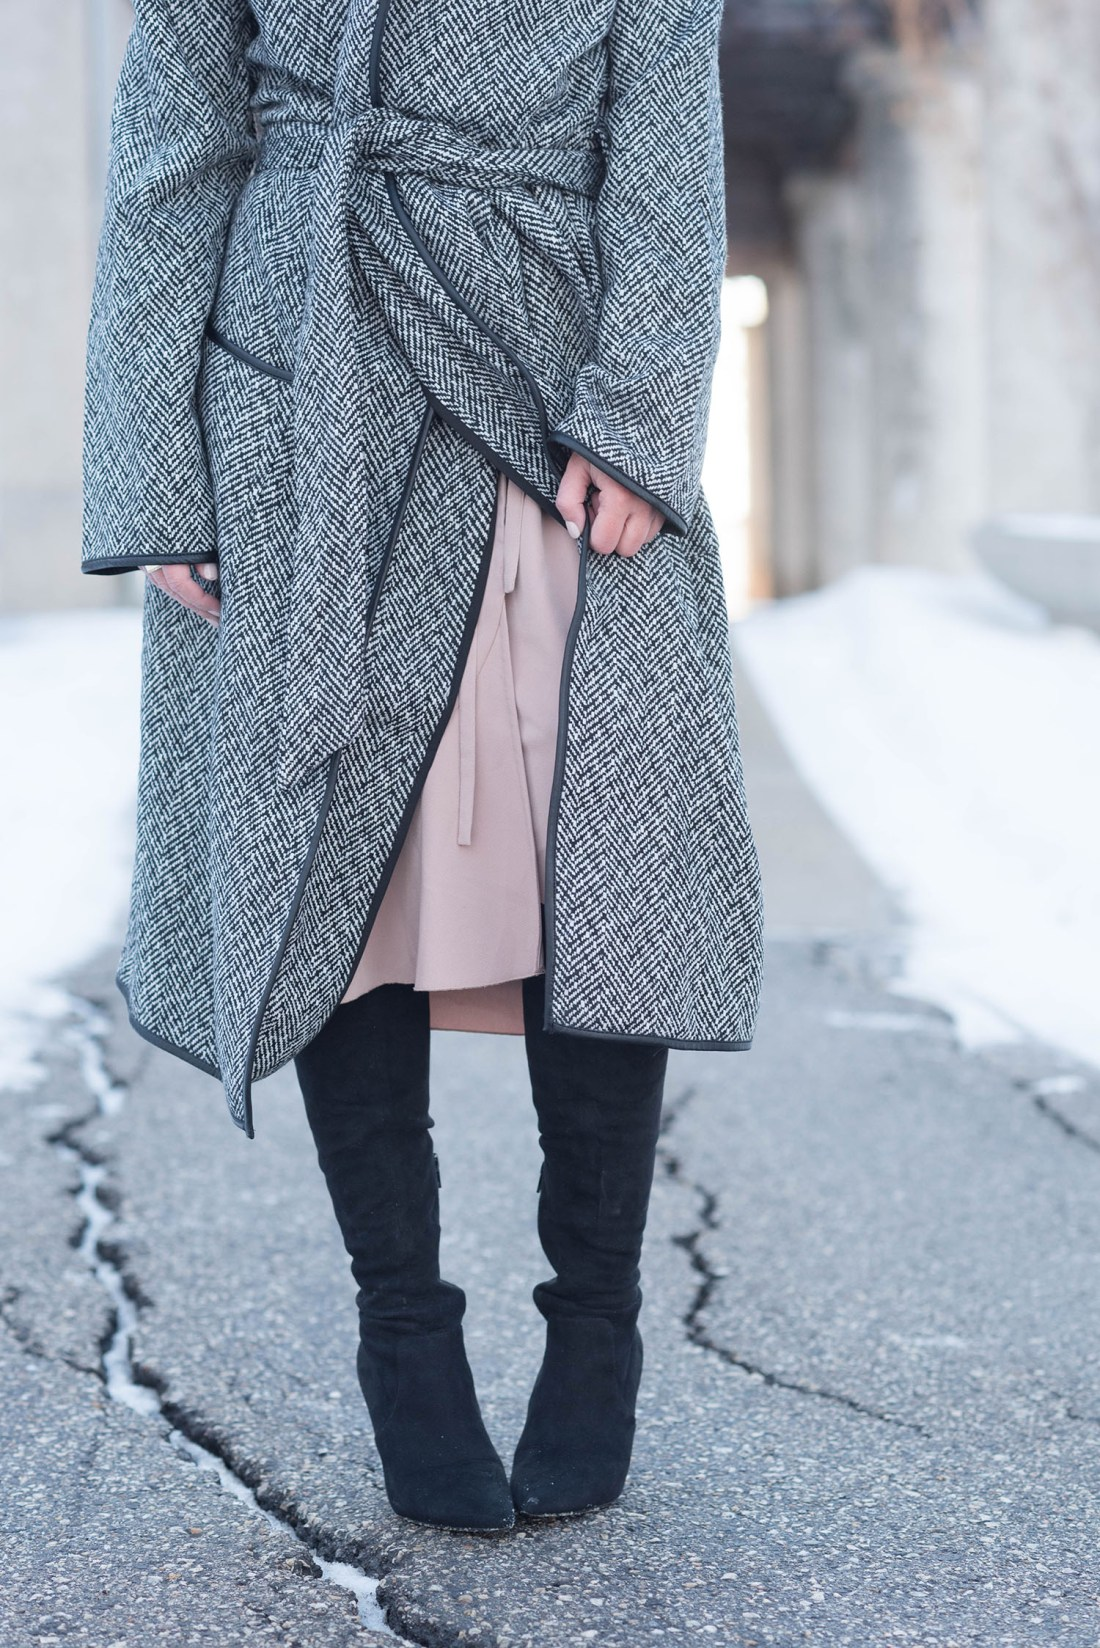 Outfit details on fashion blogger Coco & Vera including the Wilfred Josie dress and Aldo OTK boots